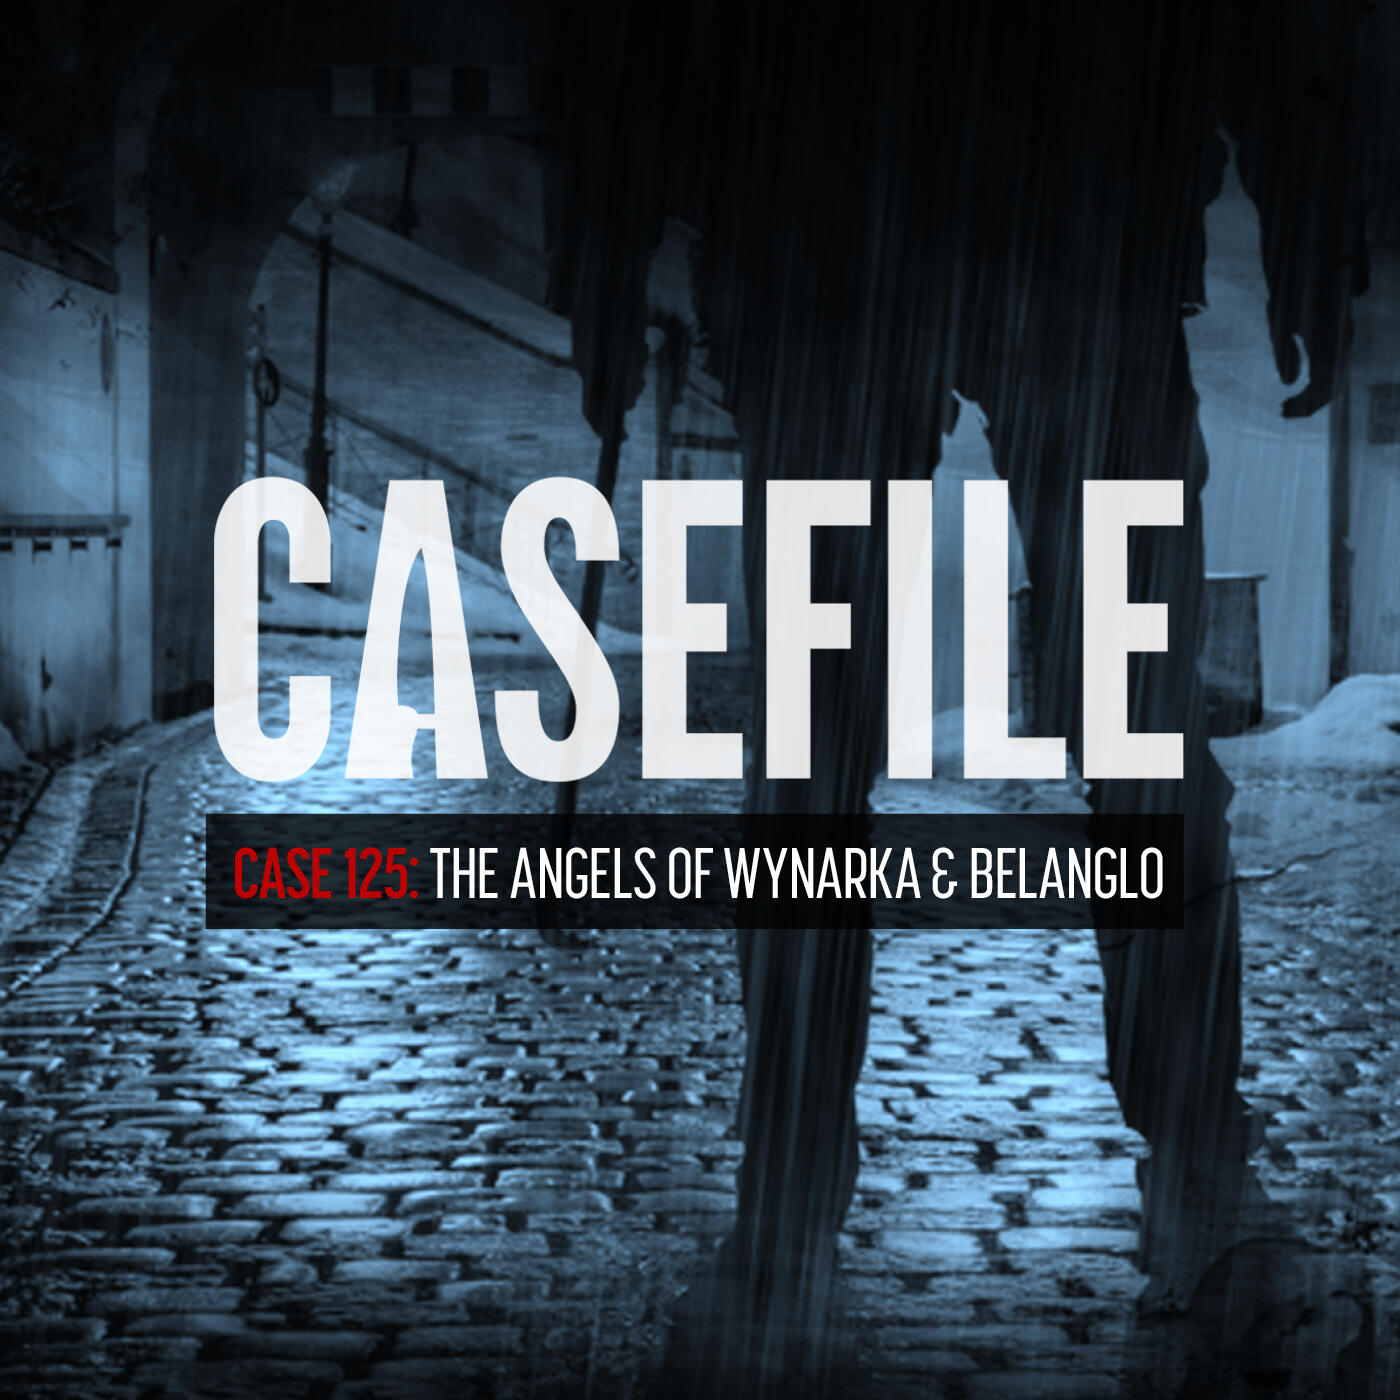 Case 125: The Angels of Wynarka & Belanglo